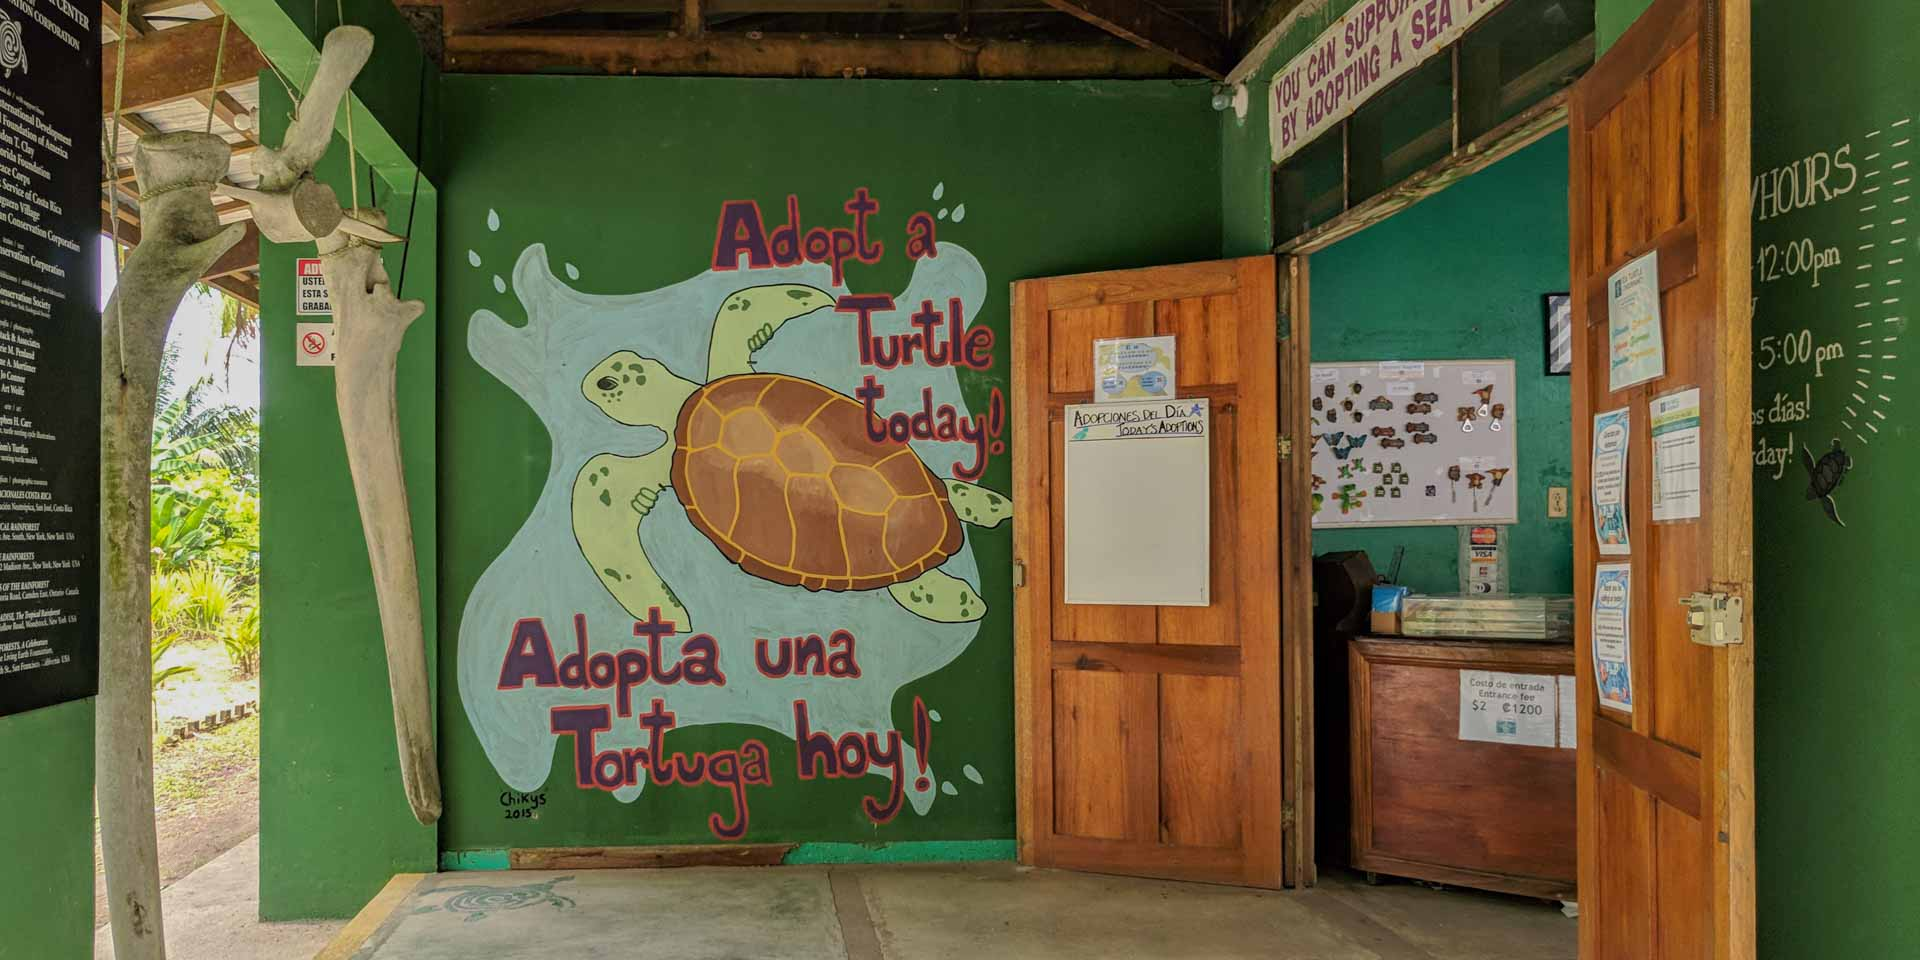 Turtle Conservation Visitor Centre, Tortuguero